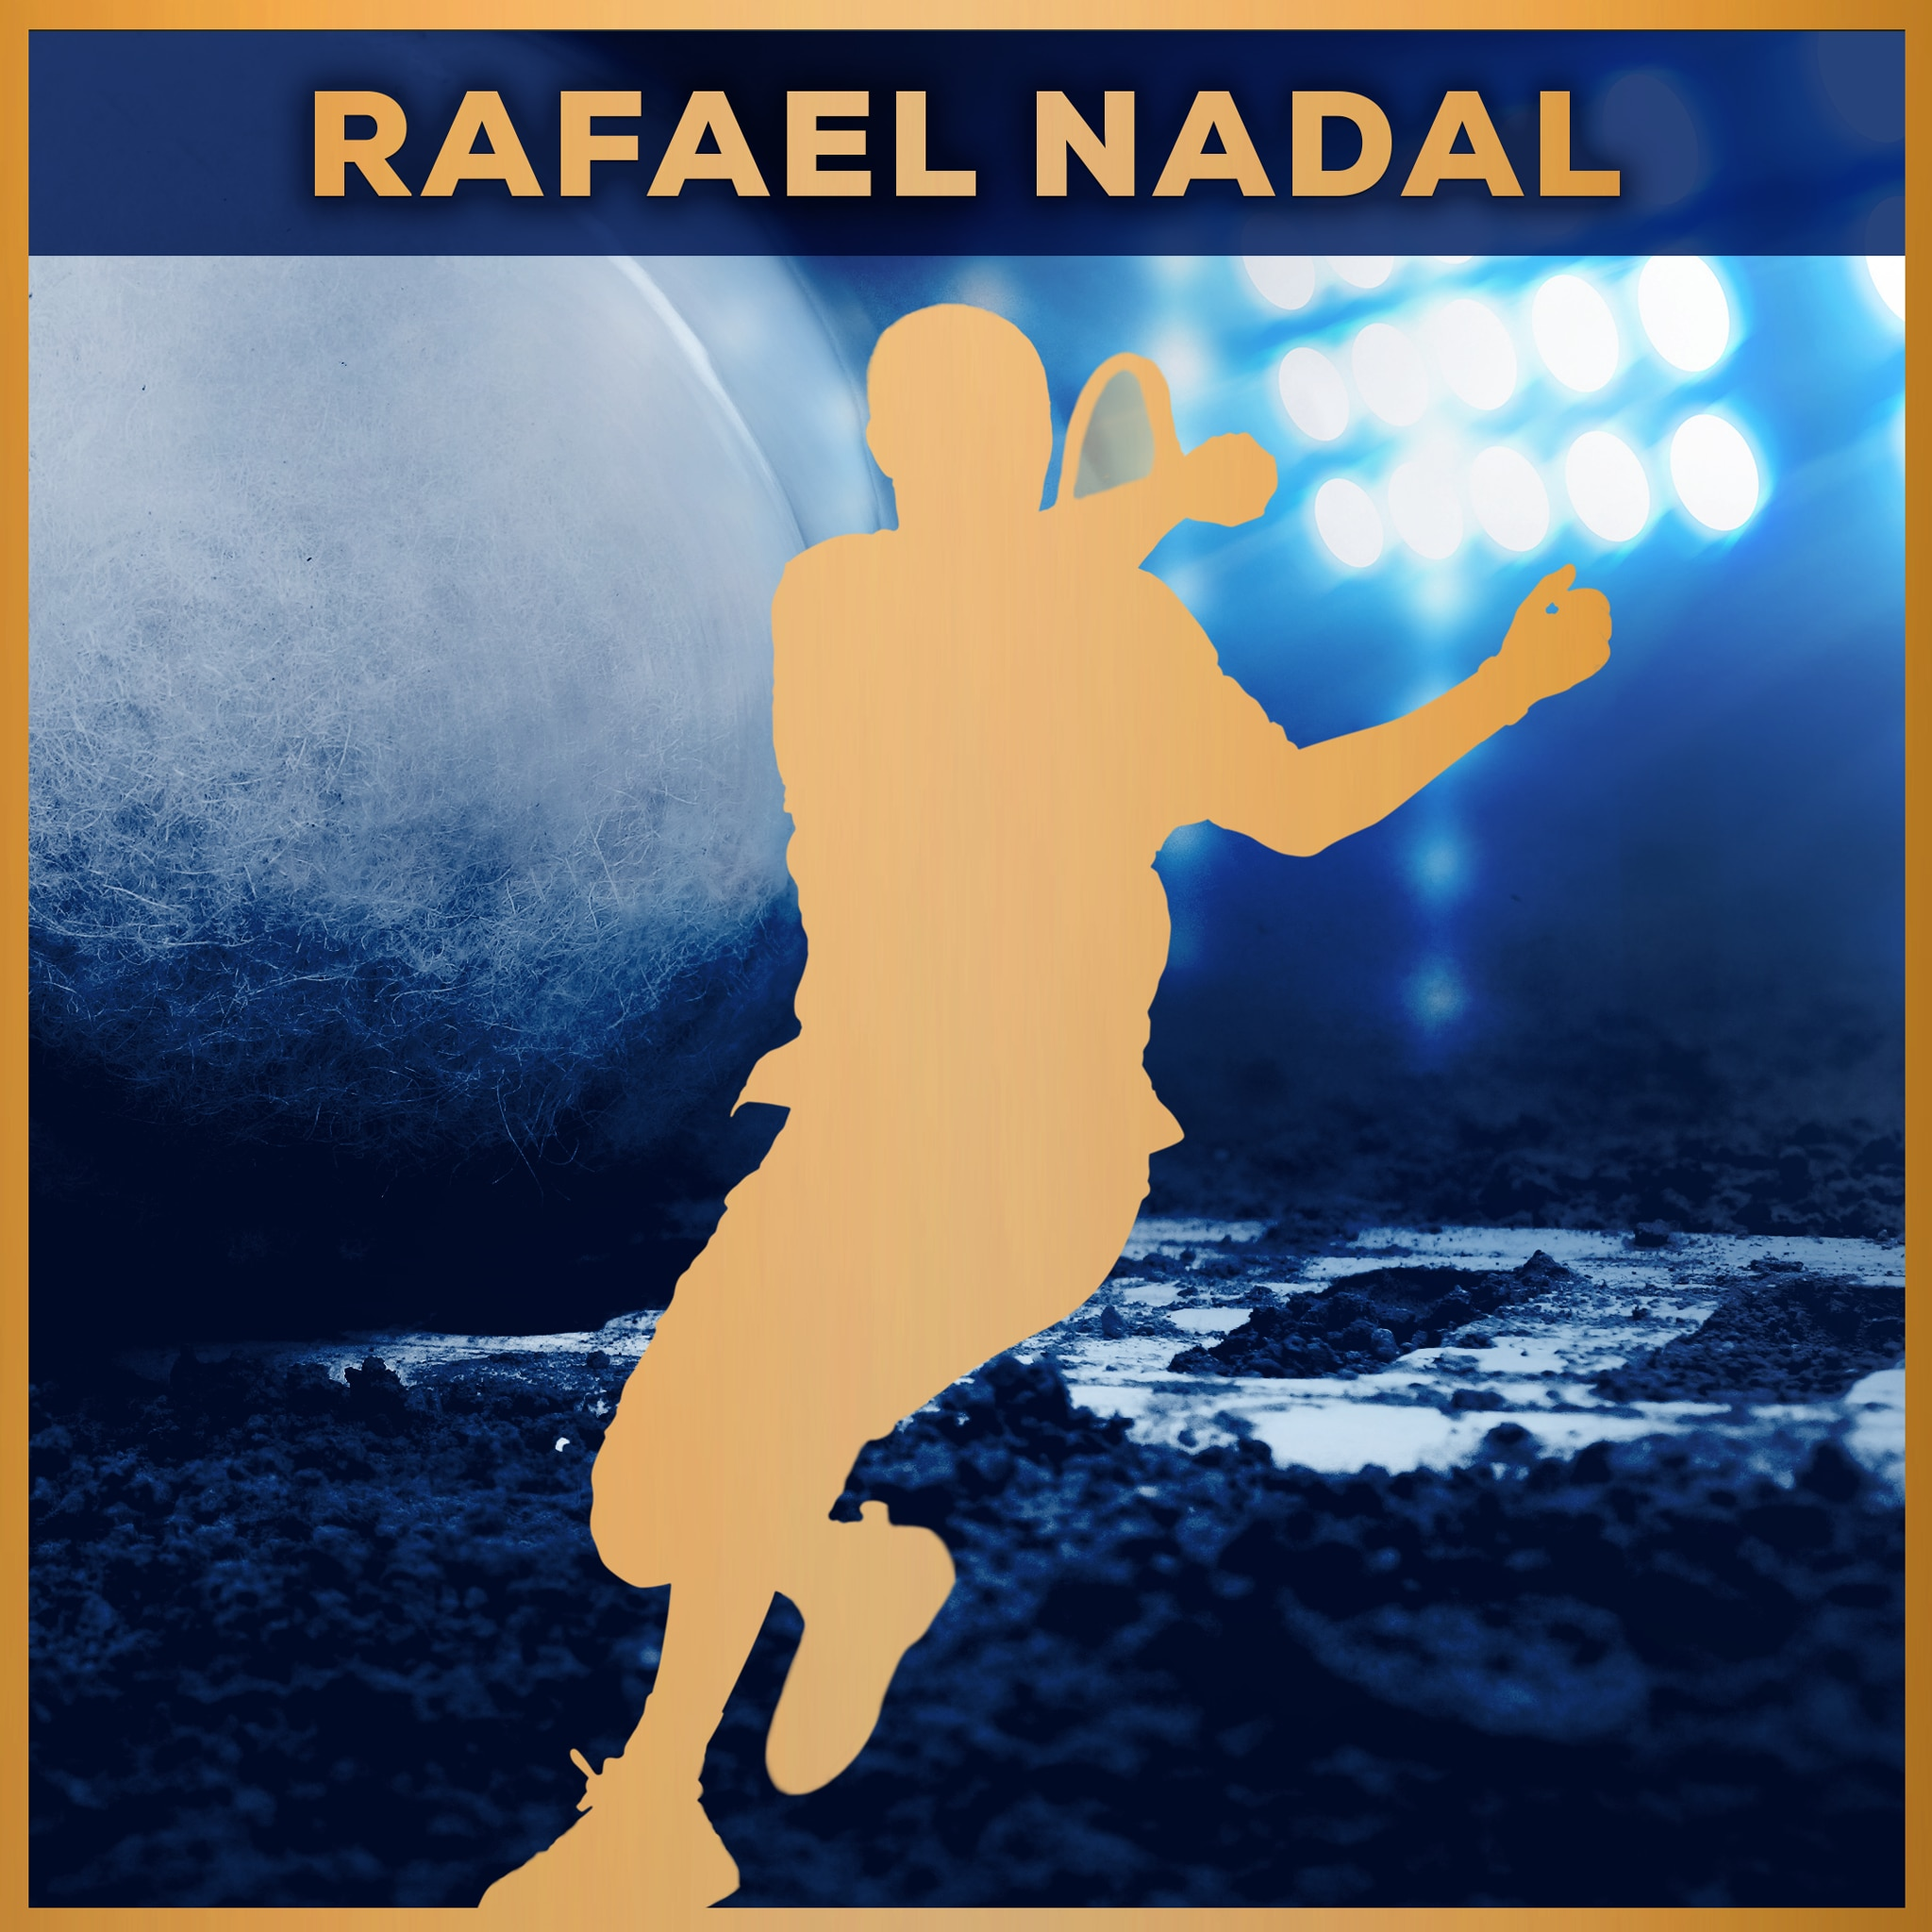 Tennis World Tour - Rafael Nadal